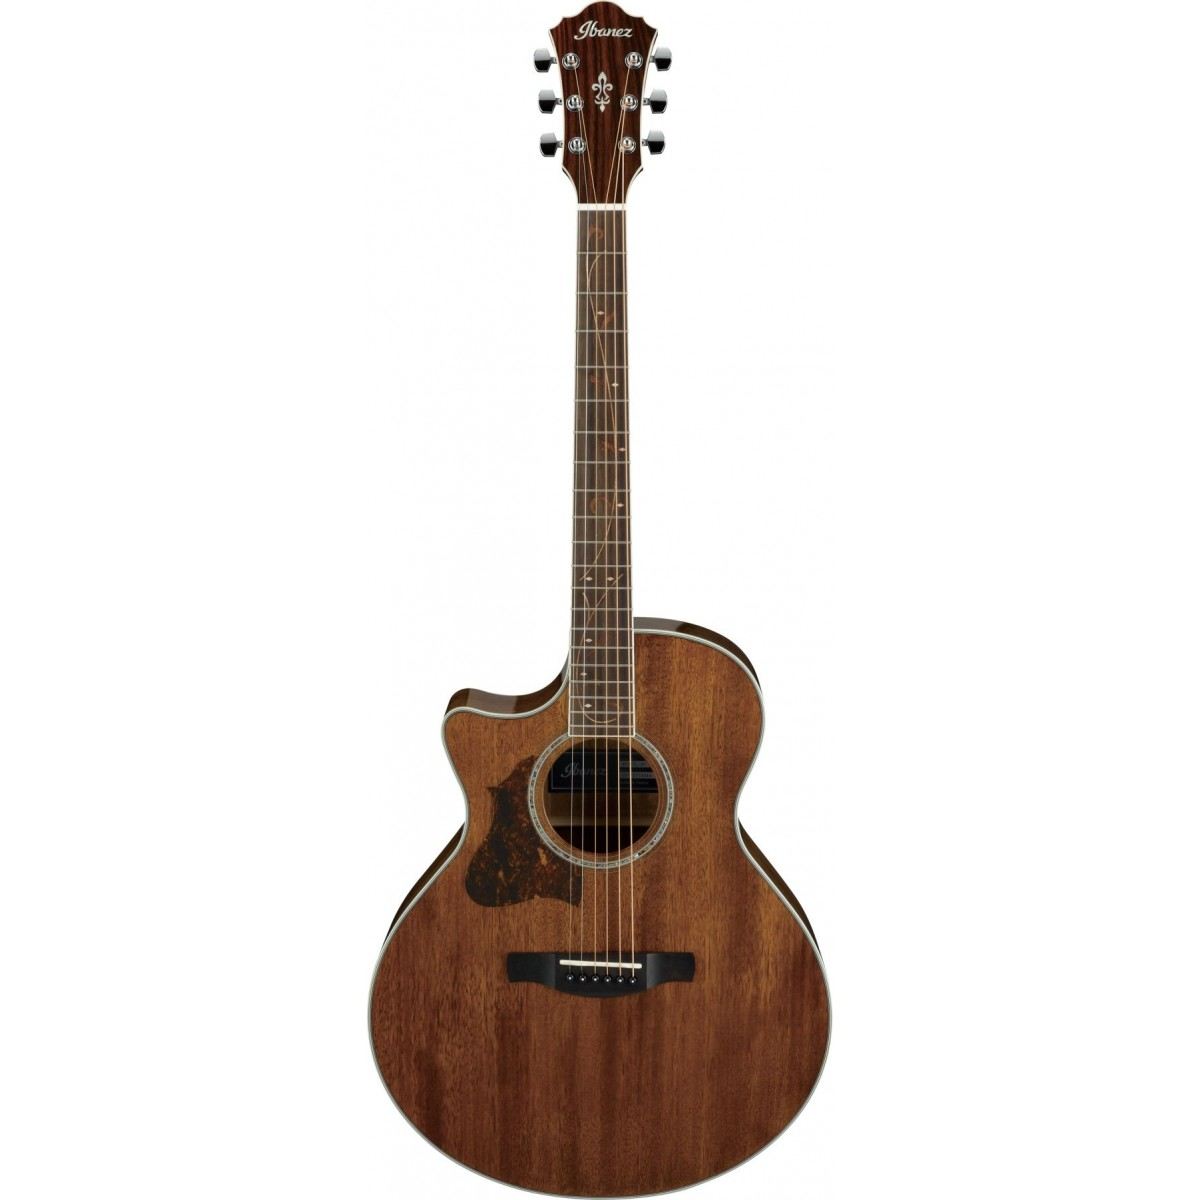 ibanez ae245l nt acoustic electric guitar left handed natural high gloss 2019. Black Bedroom Furniture Sets. Home Design Ideas